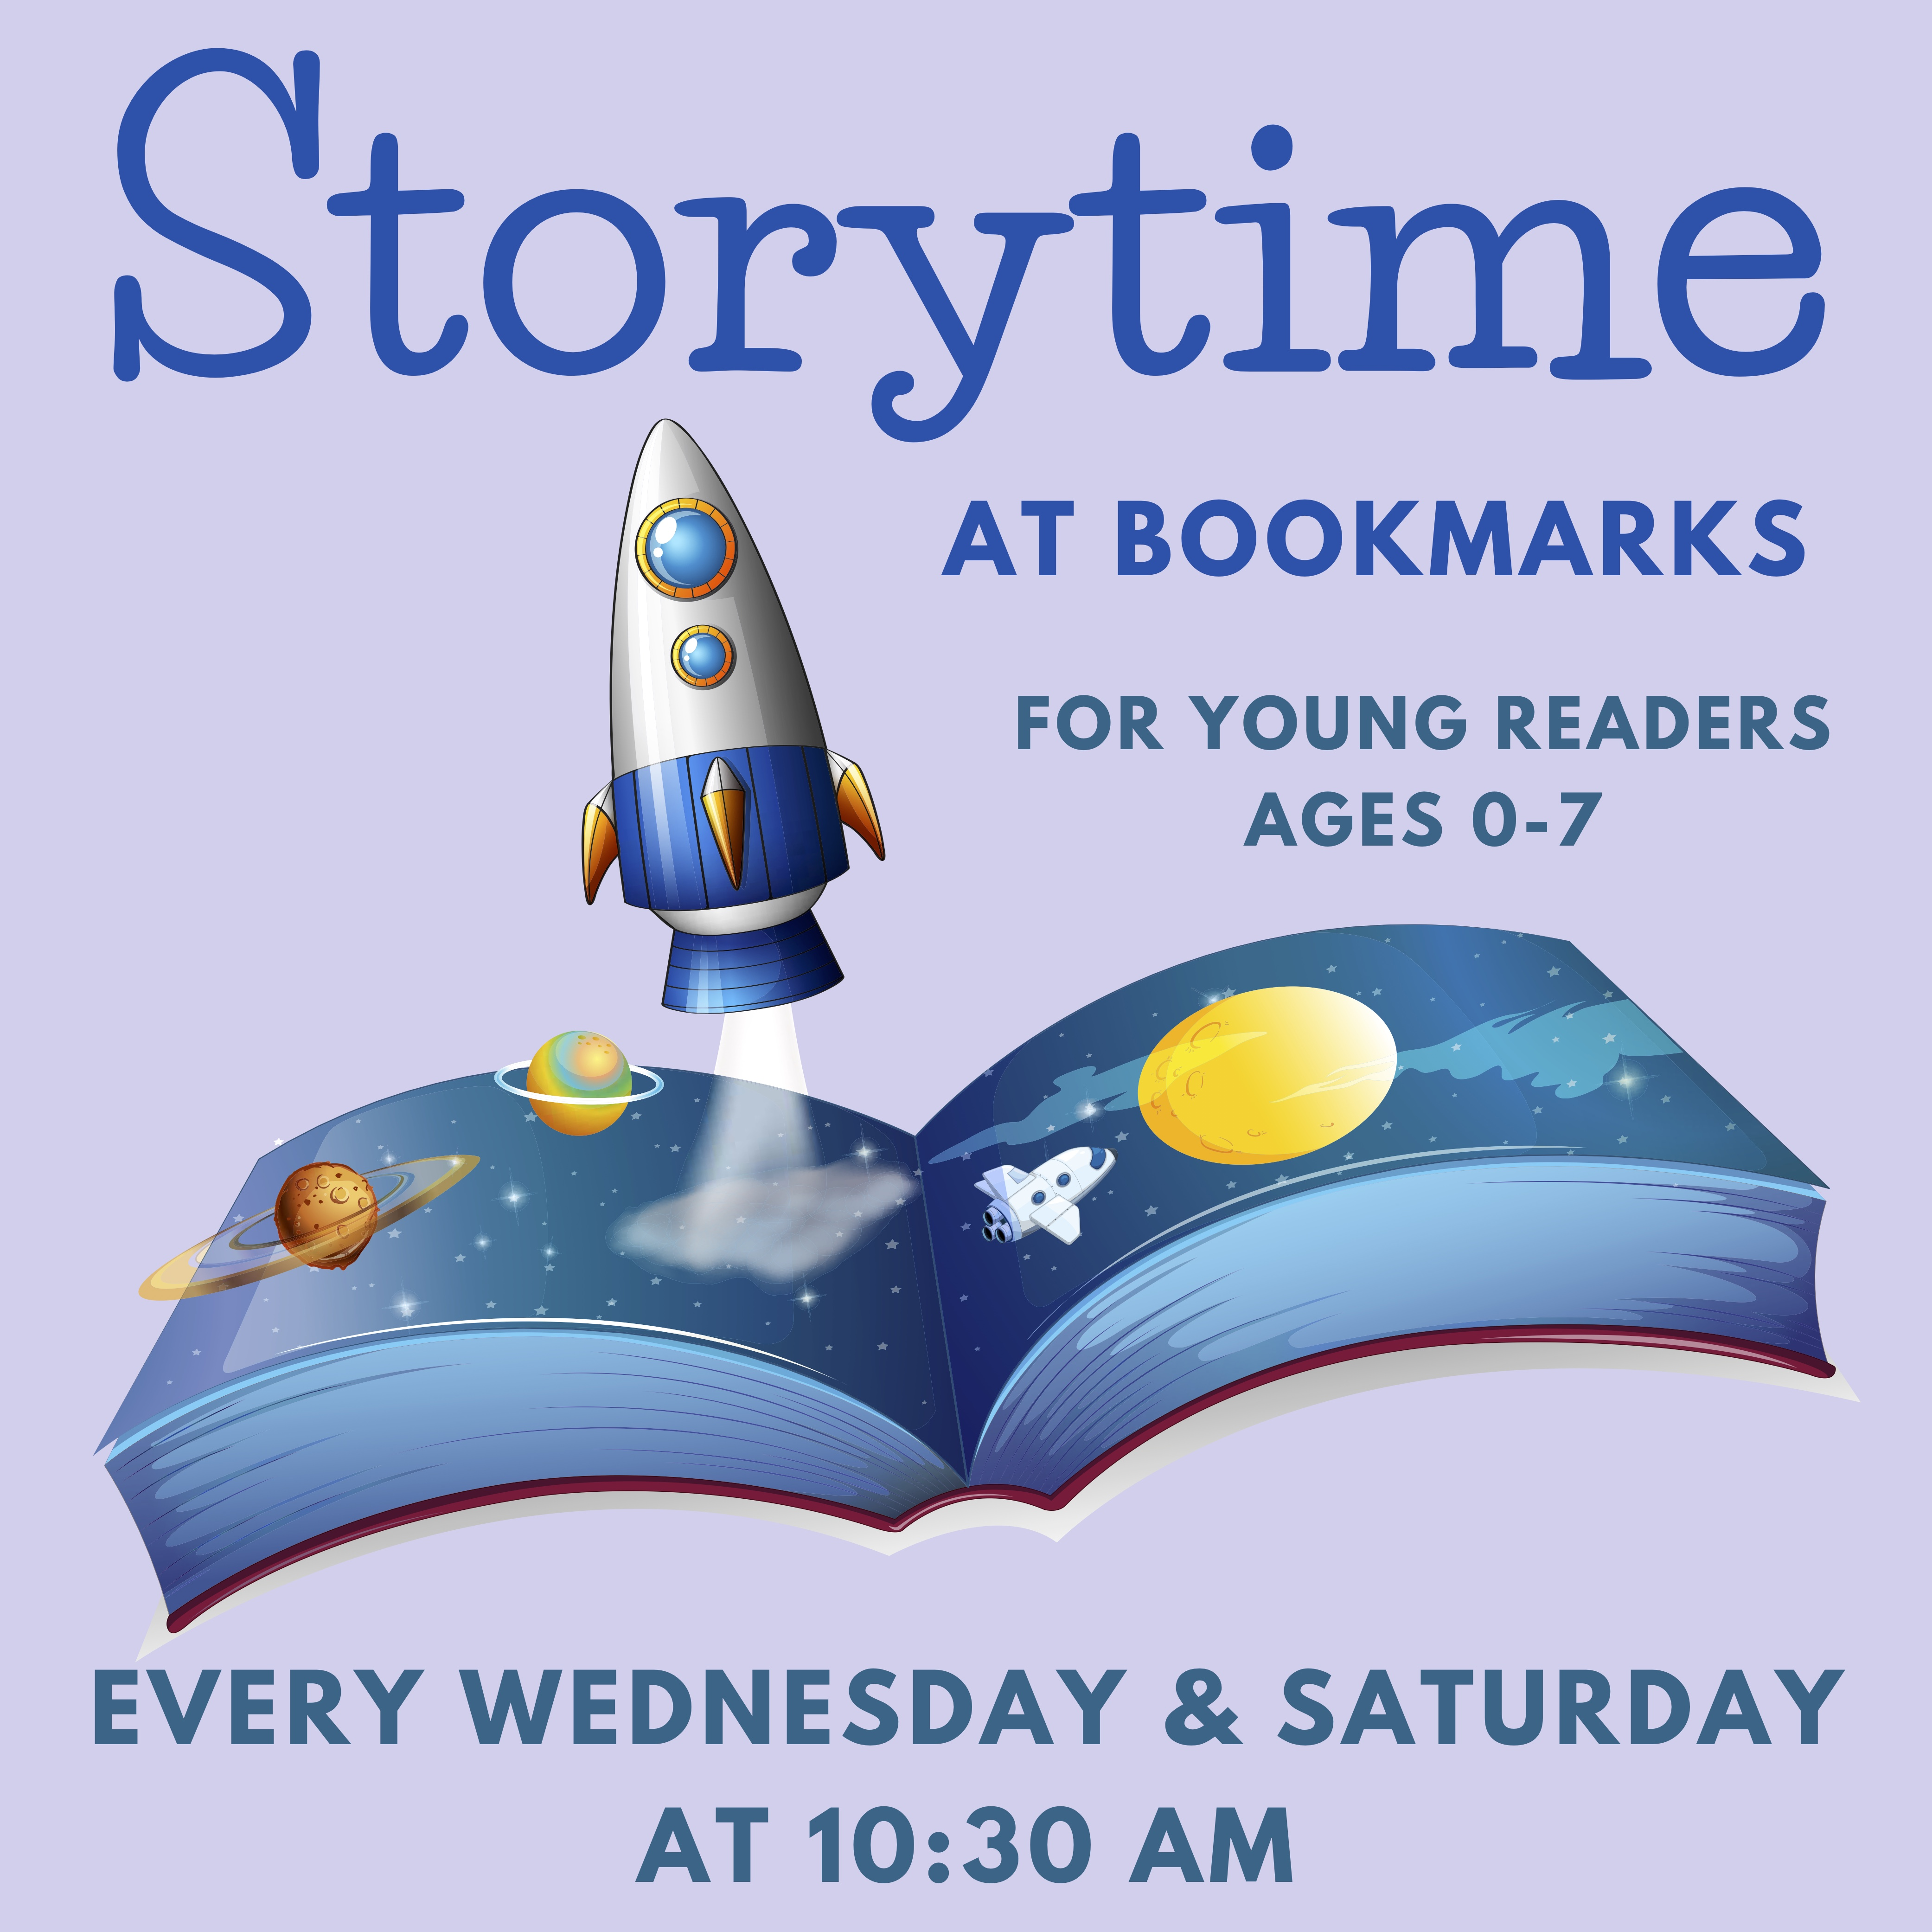 Storytime with Illustrator Raman Bhardwaj at Bookmarks